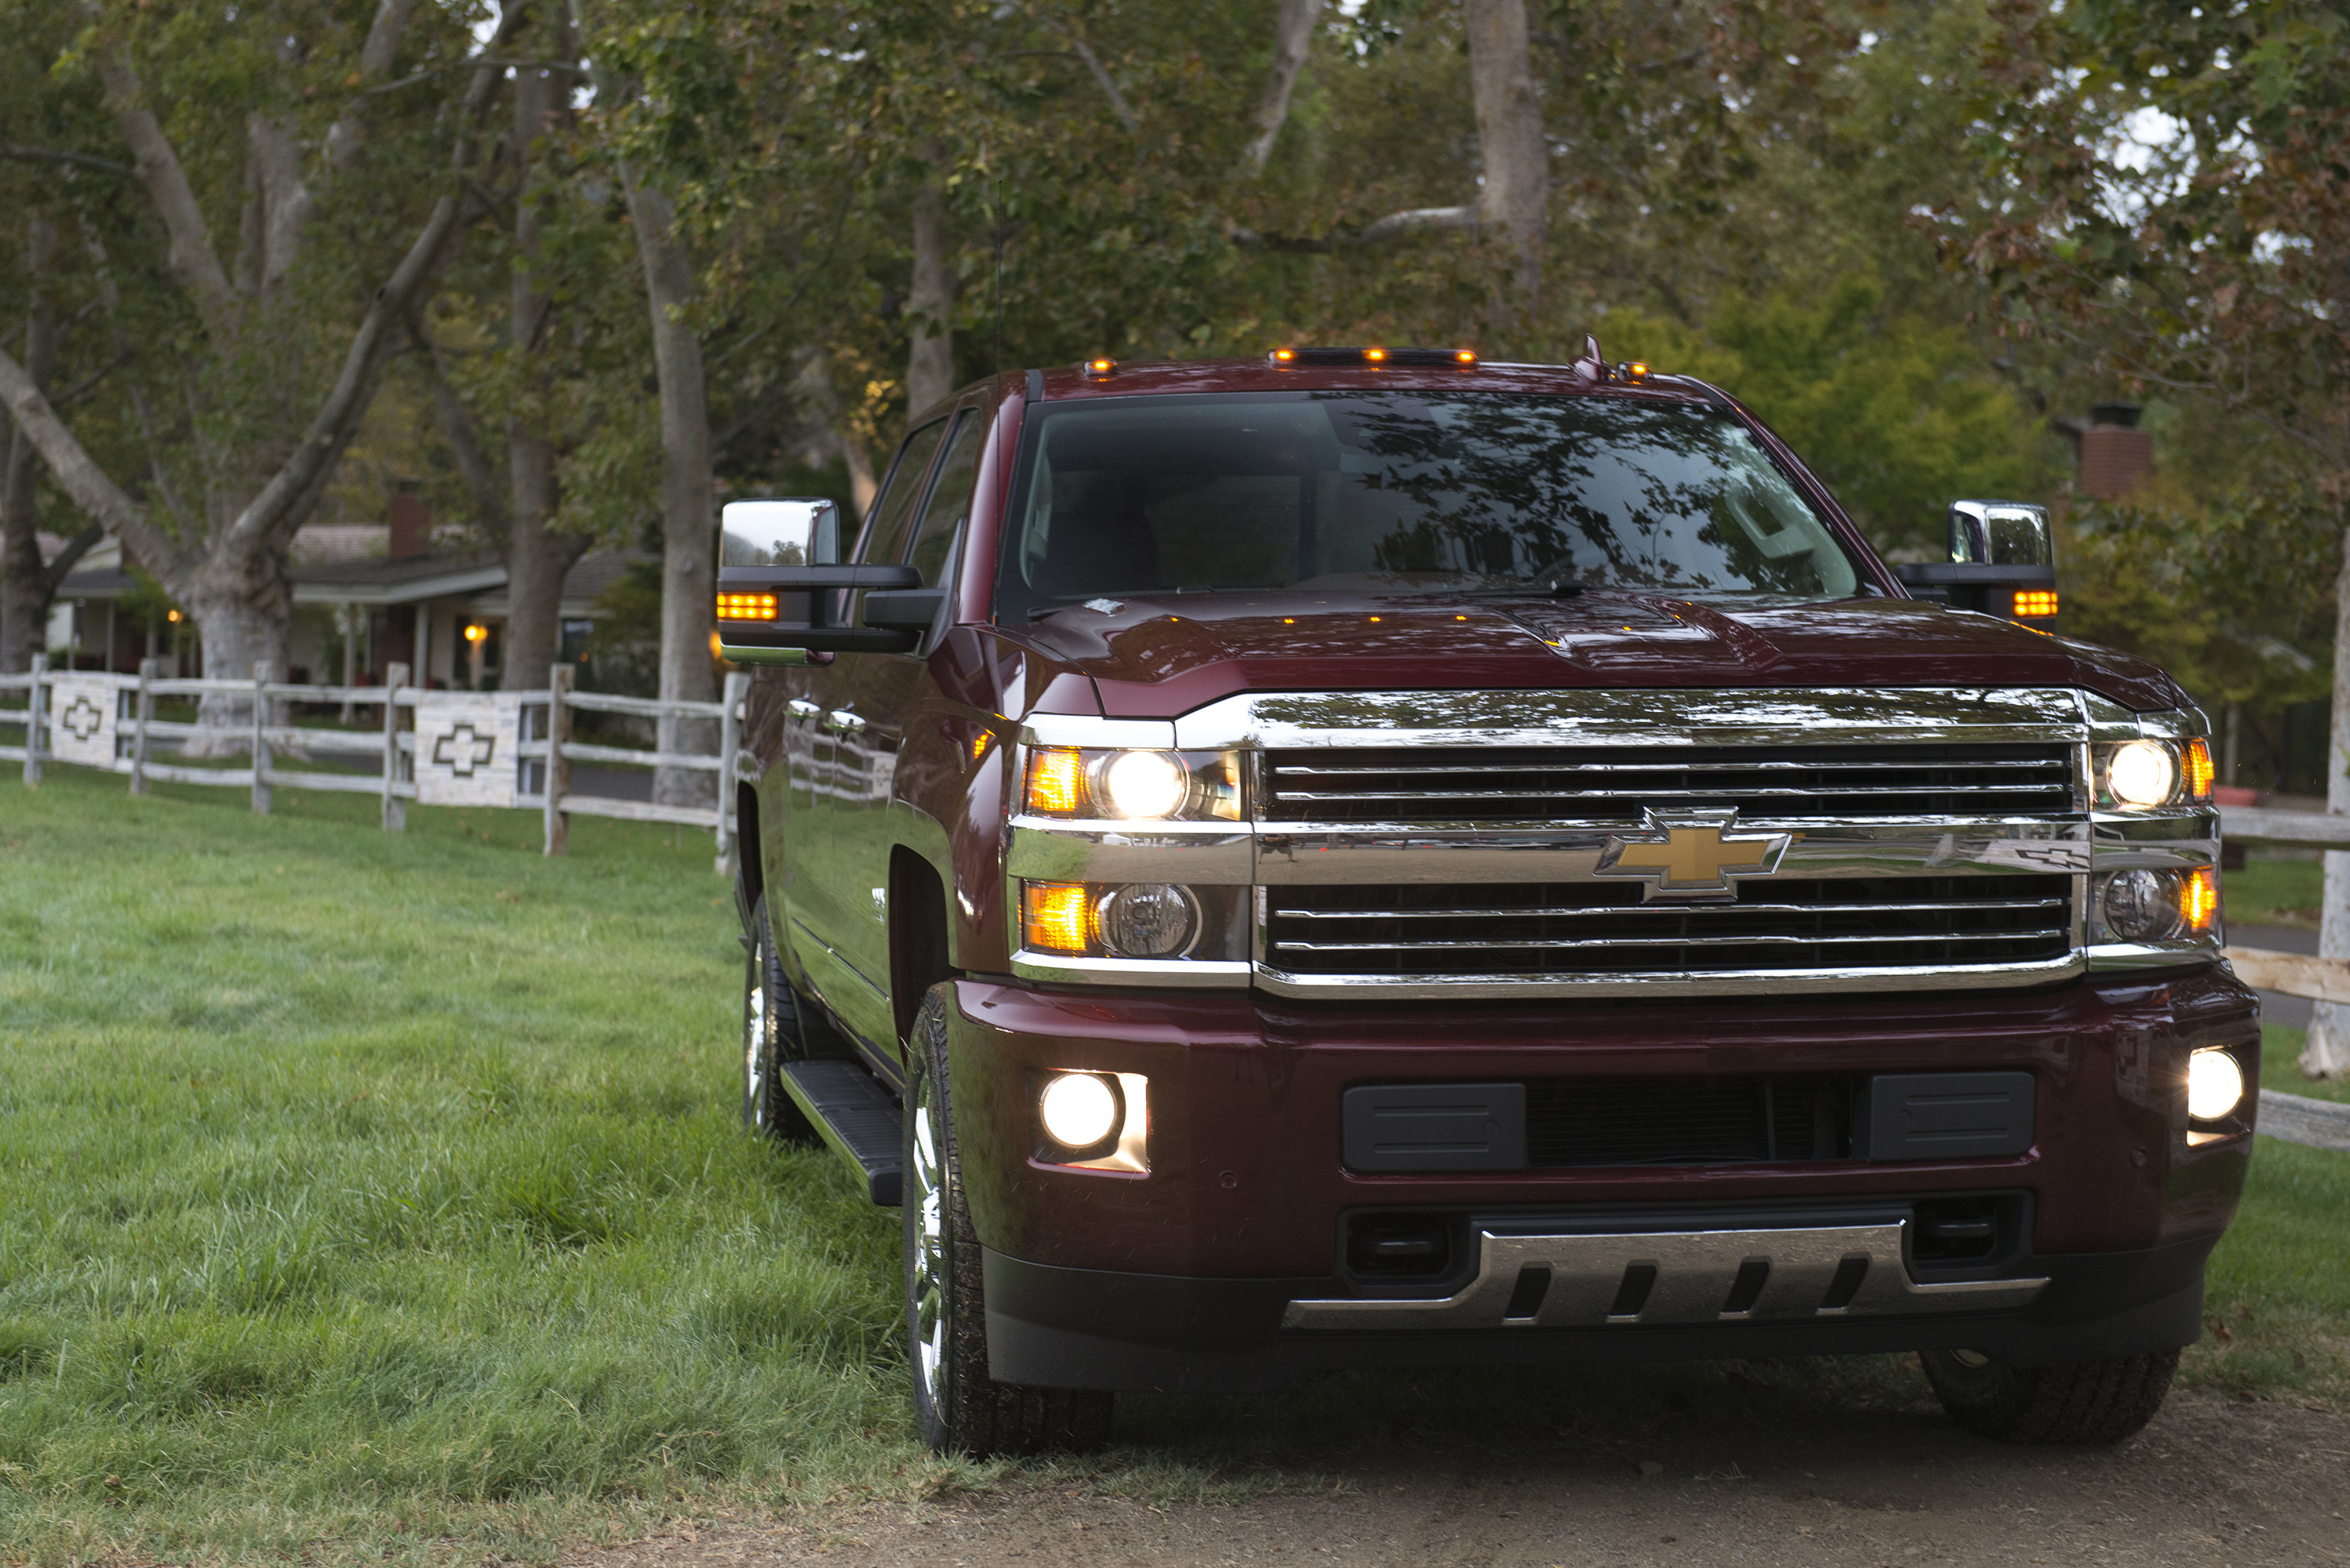 Lifted Truck Iphone Wallpaper Chevy Silverado Wallpaper 183 ① Wallpapertag